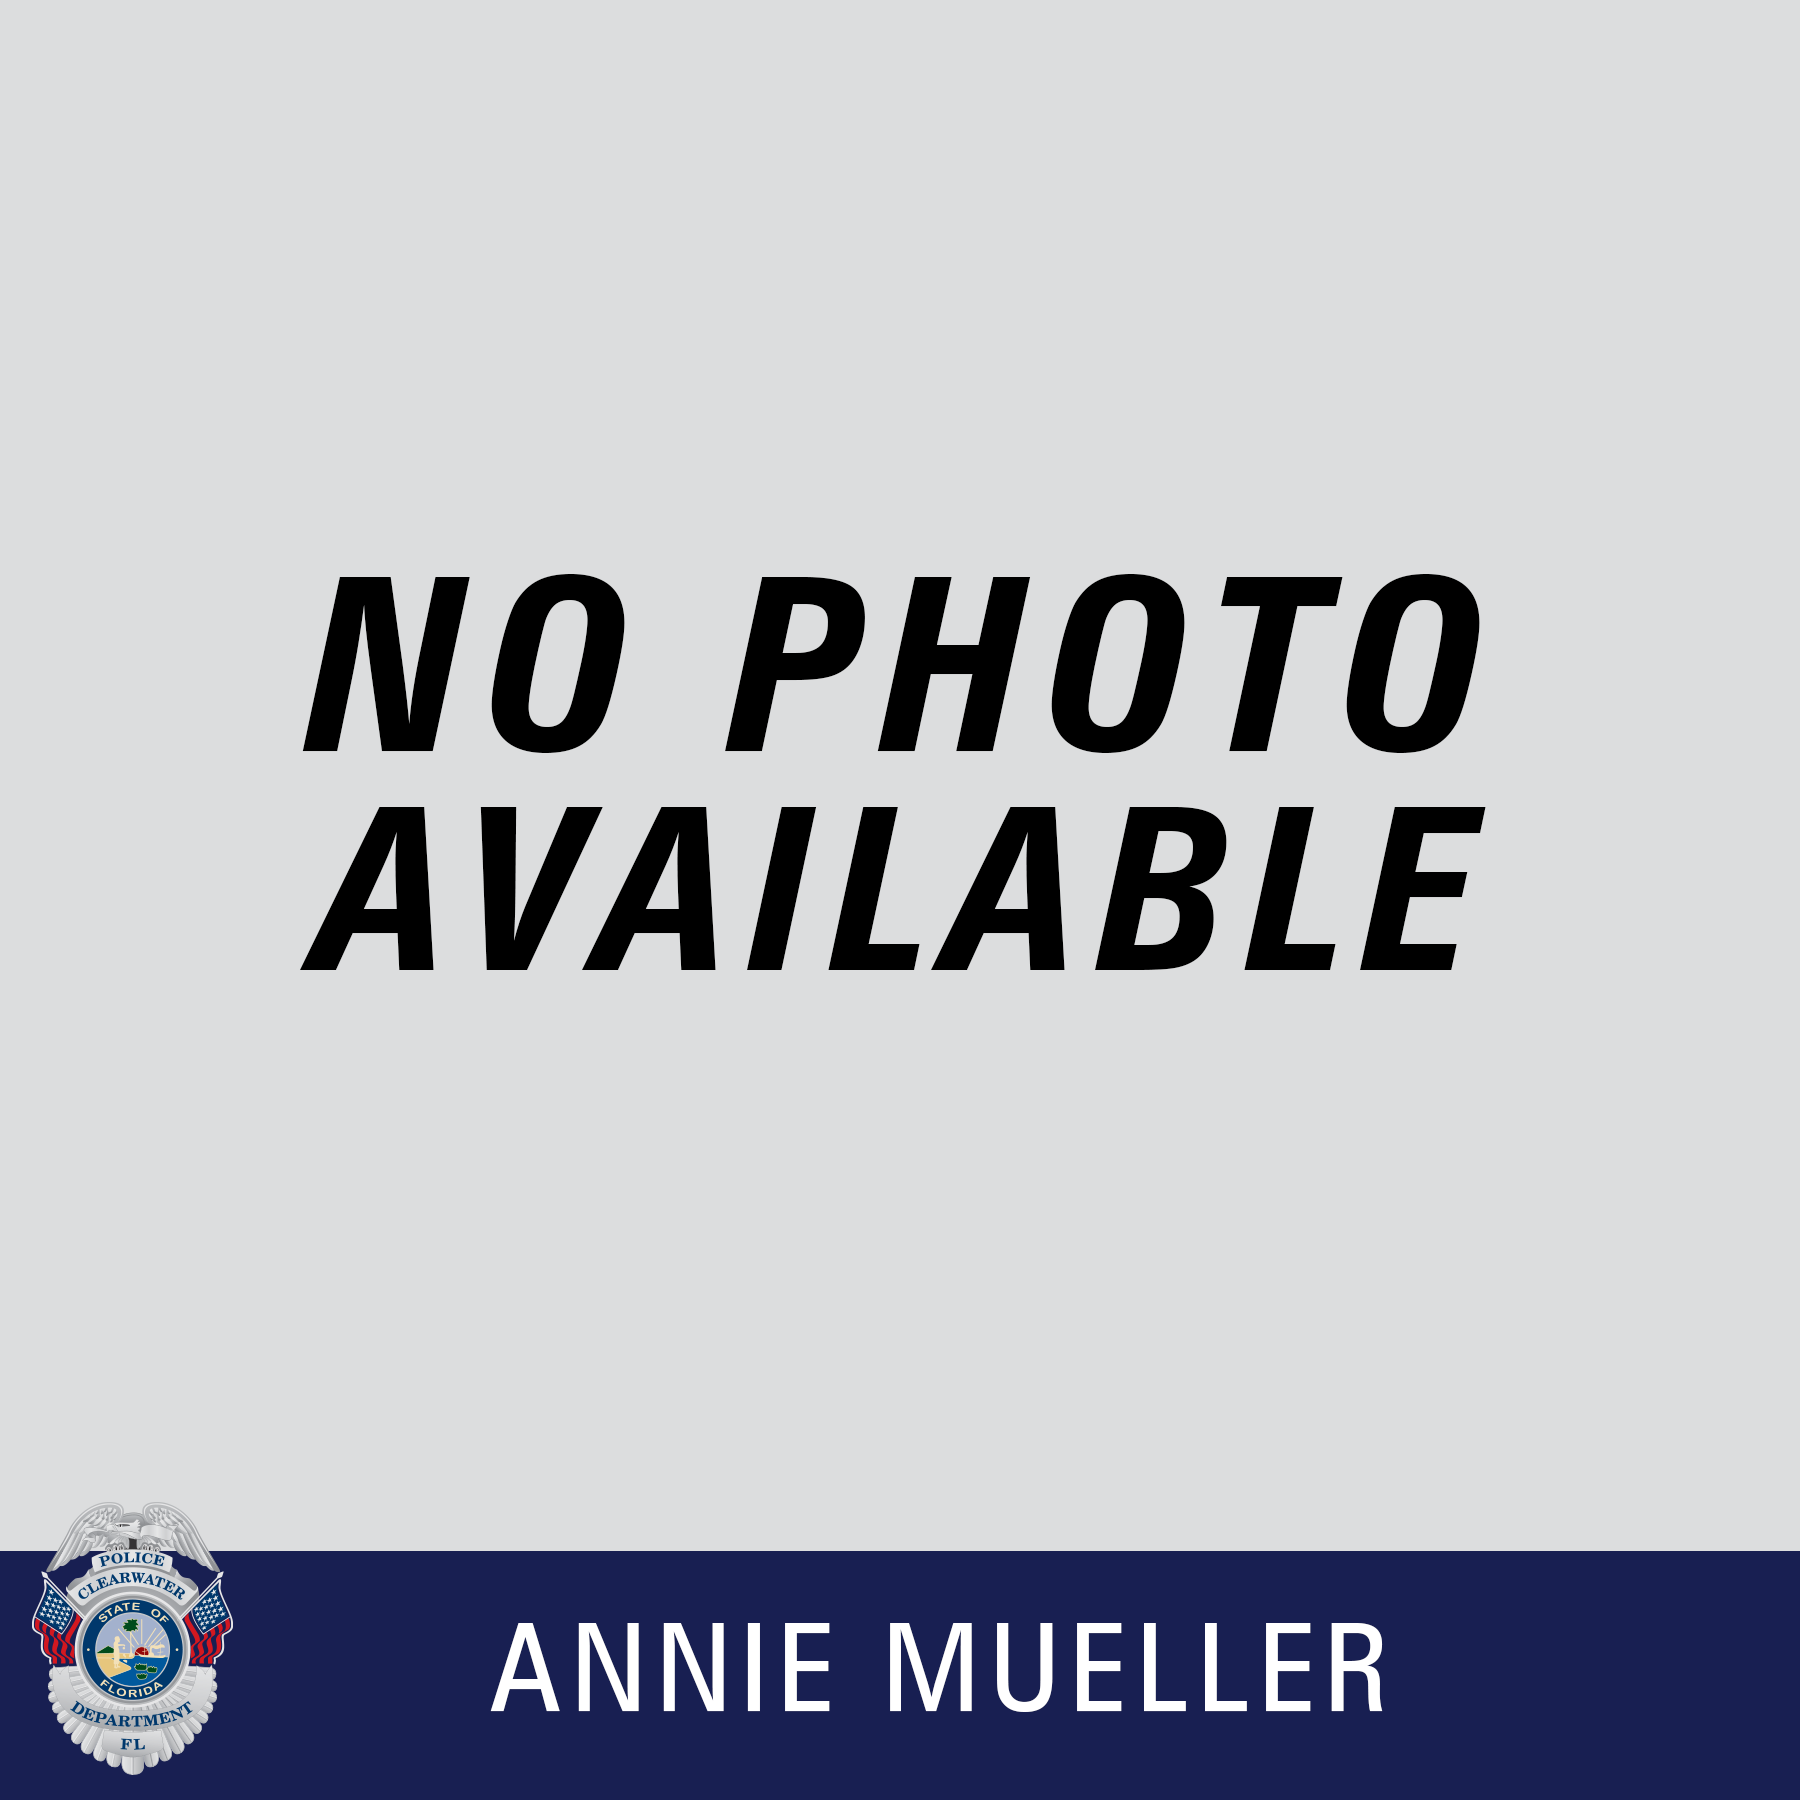 Annie Mueller, Clearwater Police Department Shield, No Photo Available